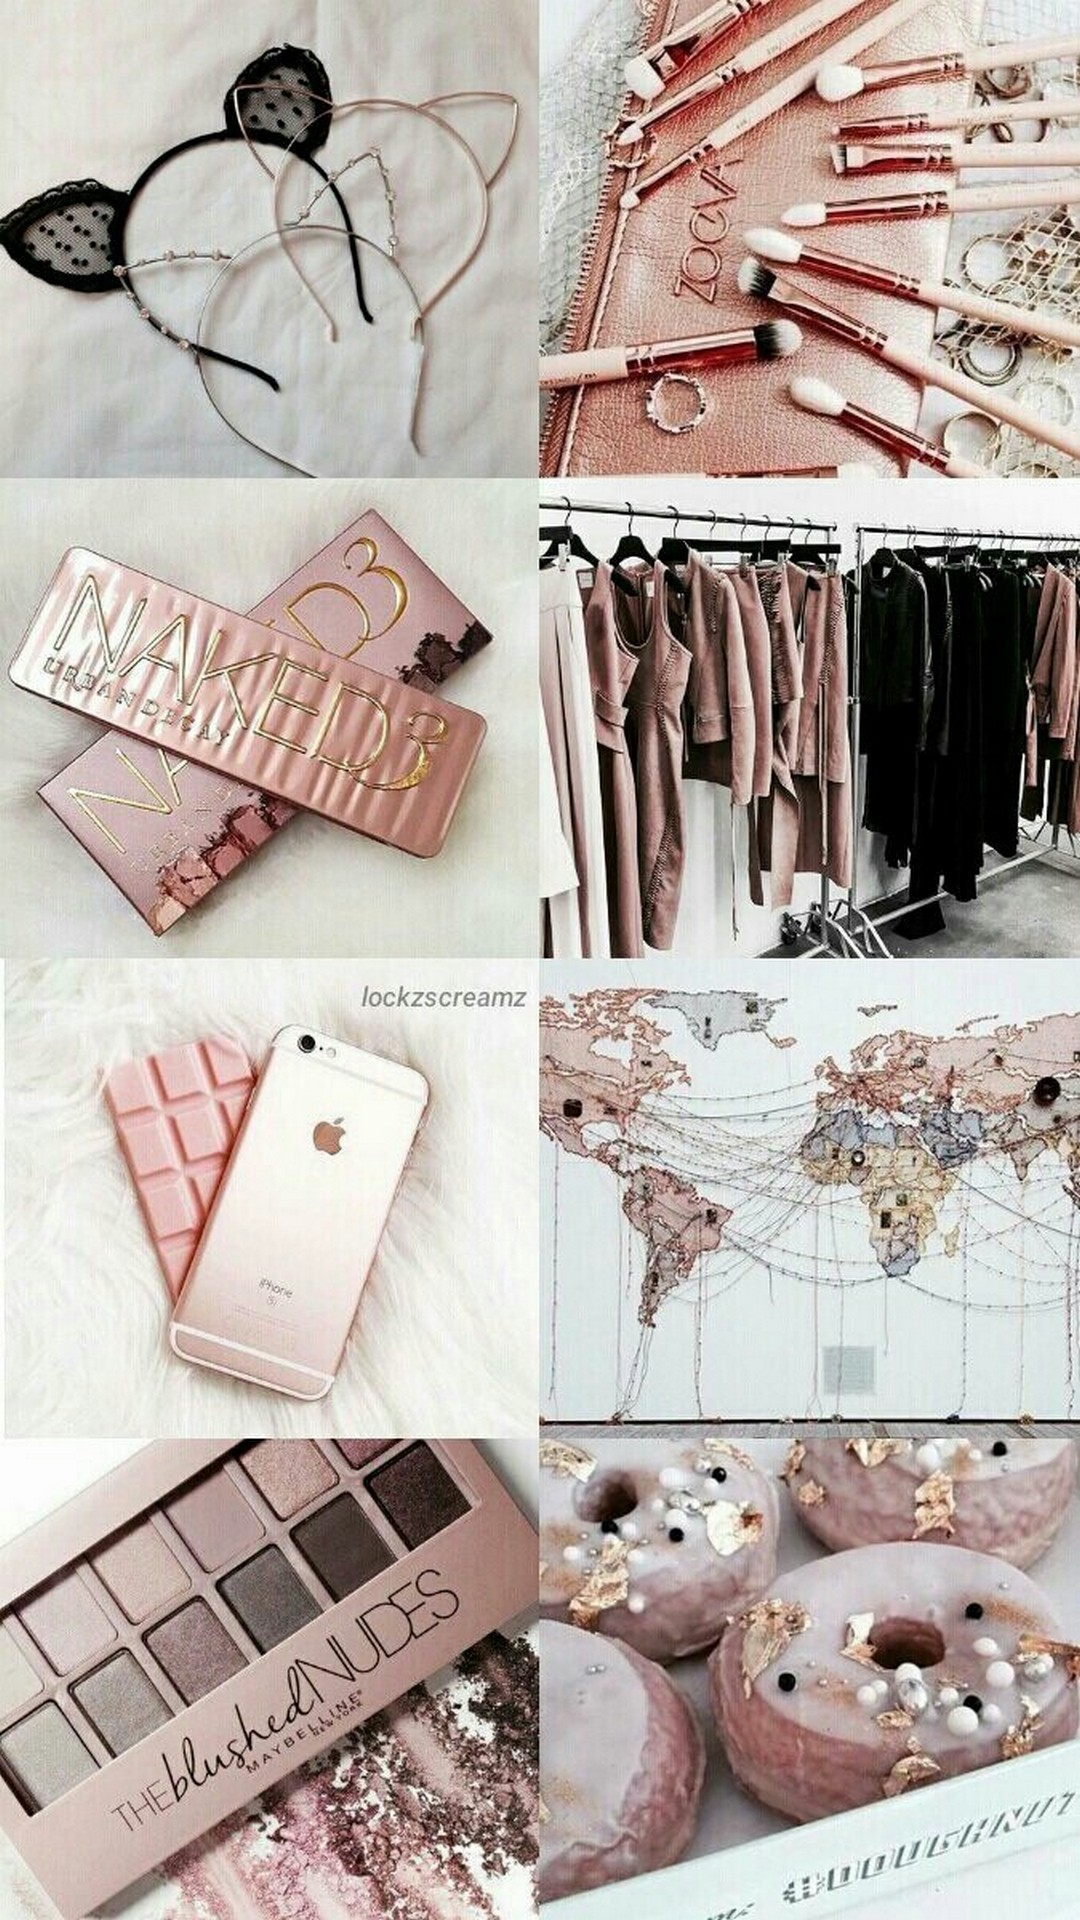 Iphone 6 Wallpaper Rose Gold Lock Screen Resolution Lock Screen Iphone 6 Wallpaper Rose Gold 1080x1920 Wallpaper Teahub Io